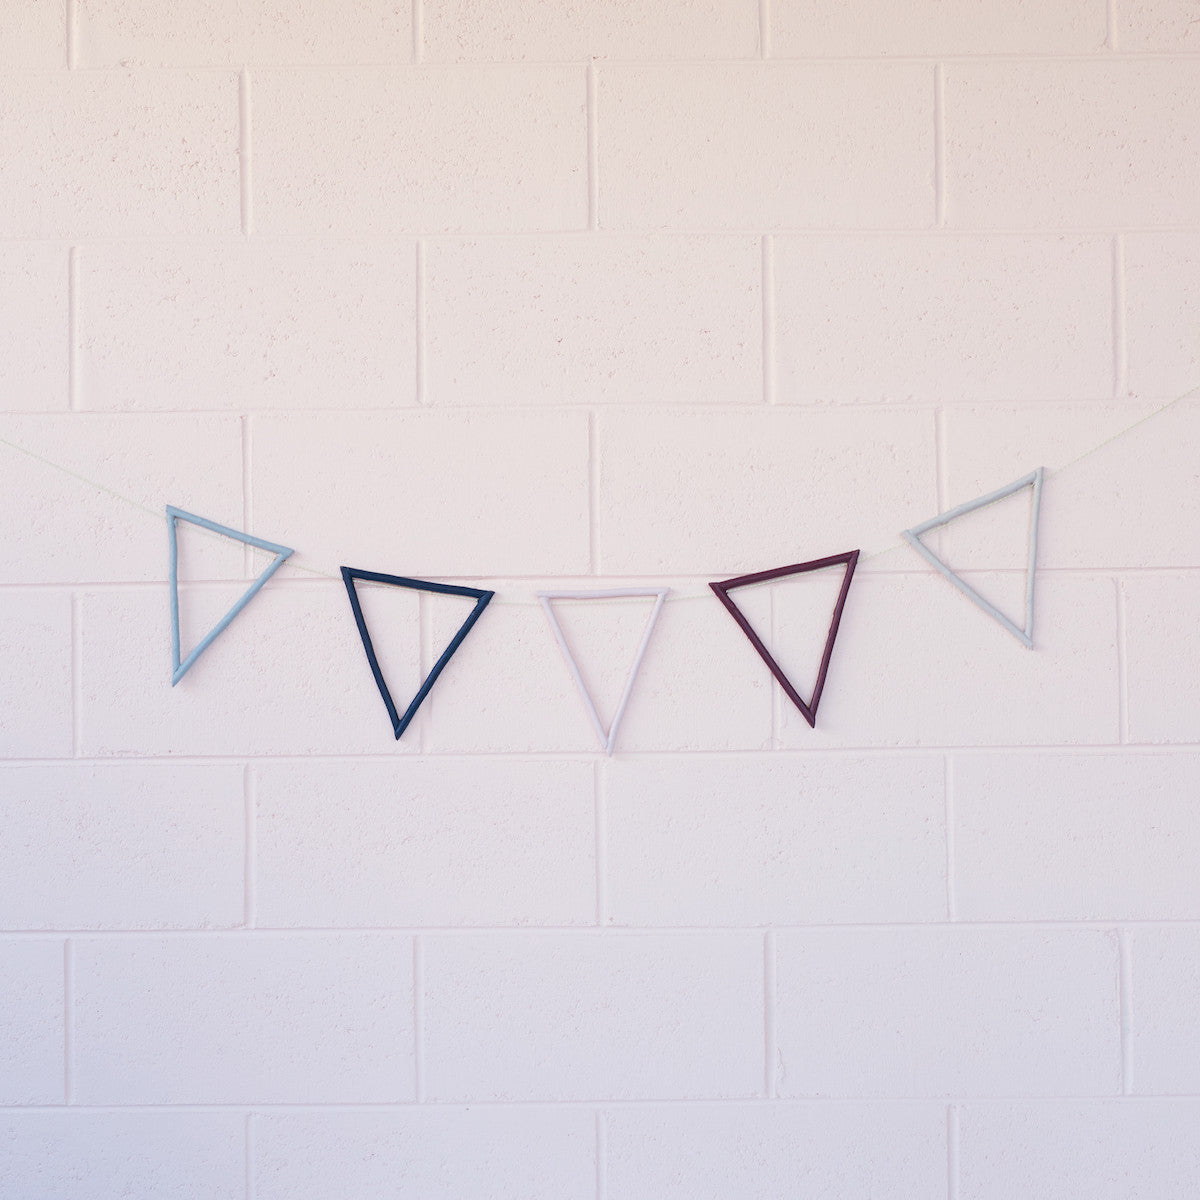 bunting by twiggargerie